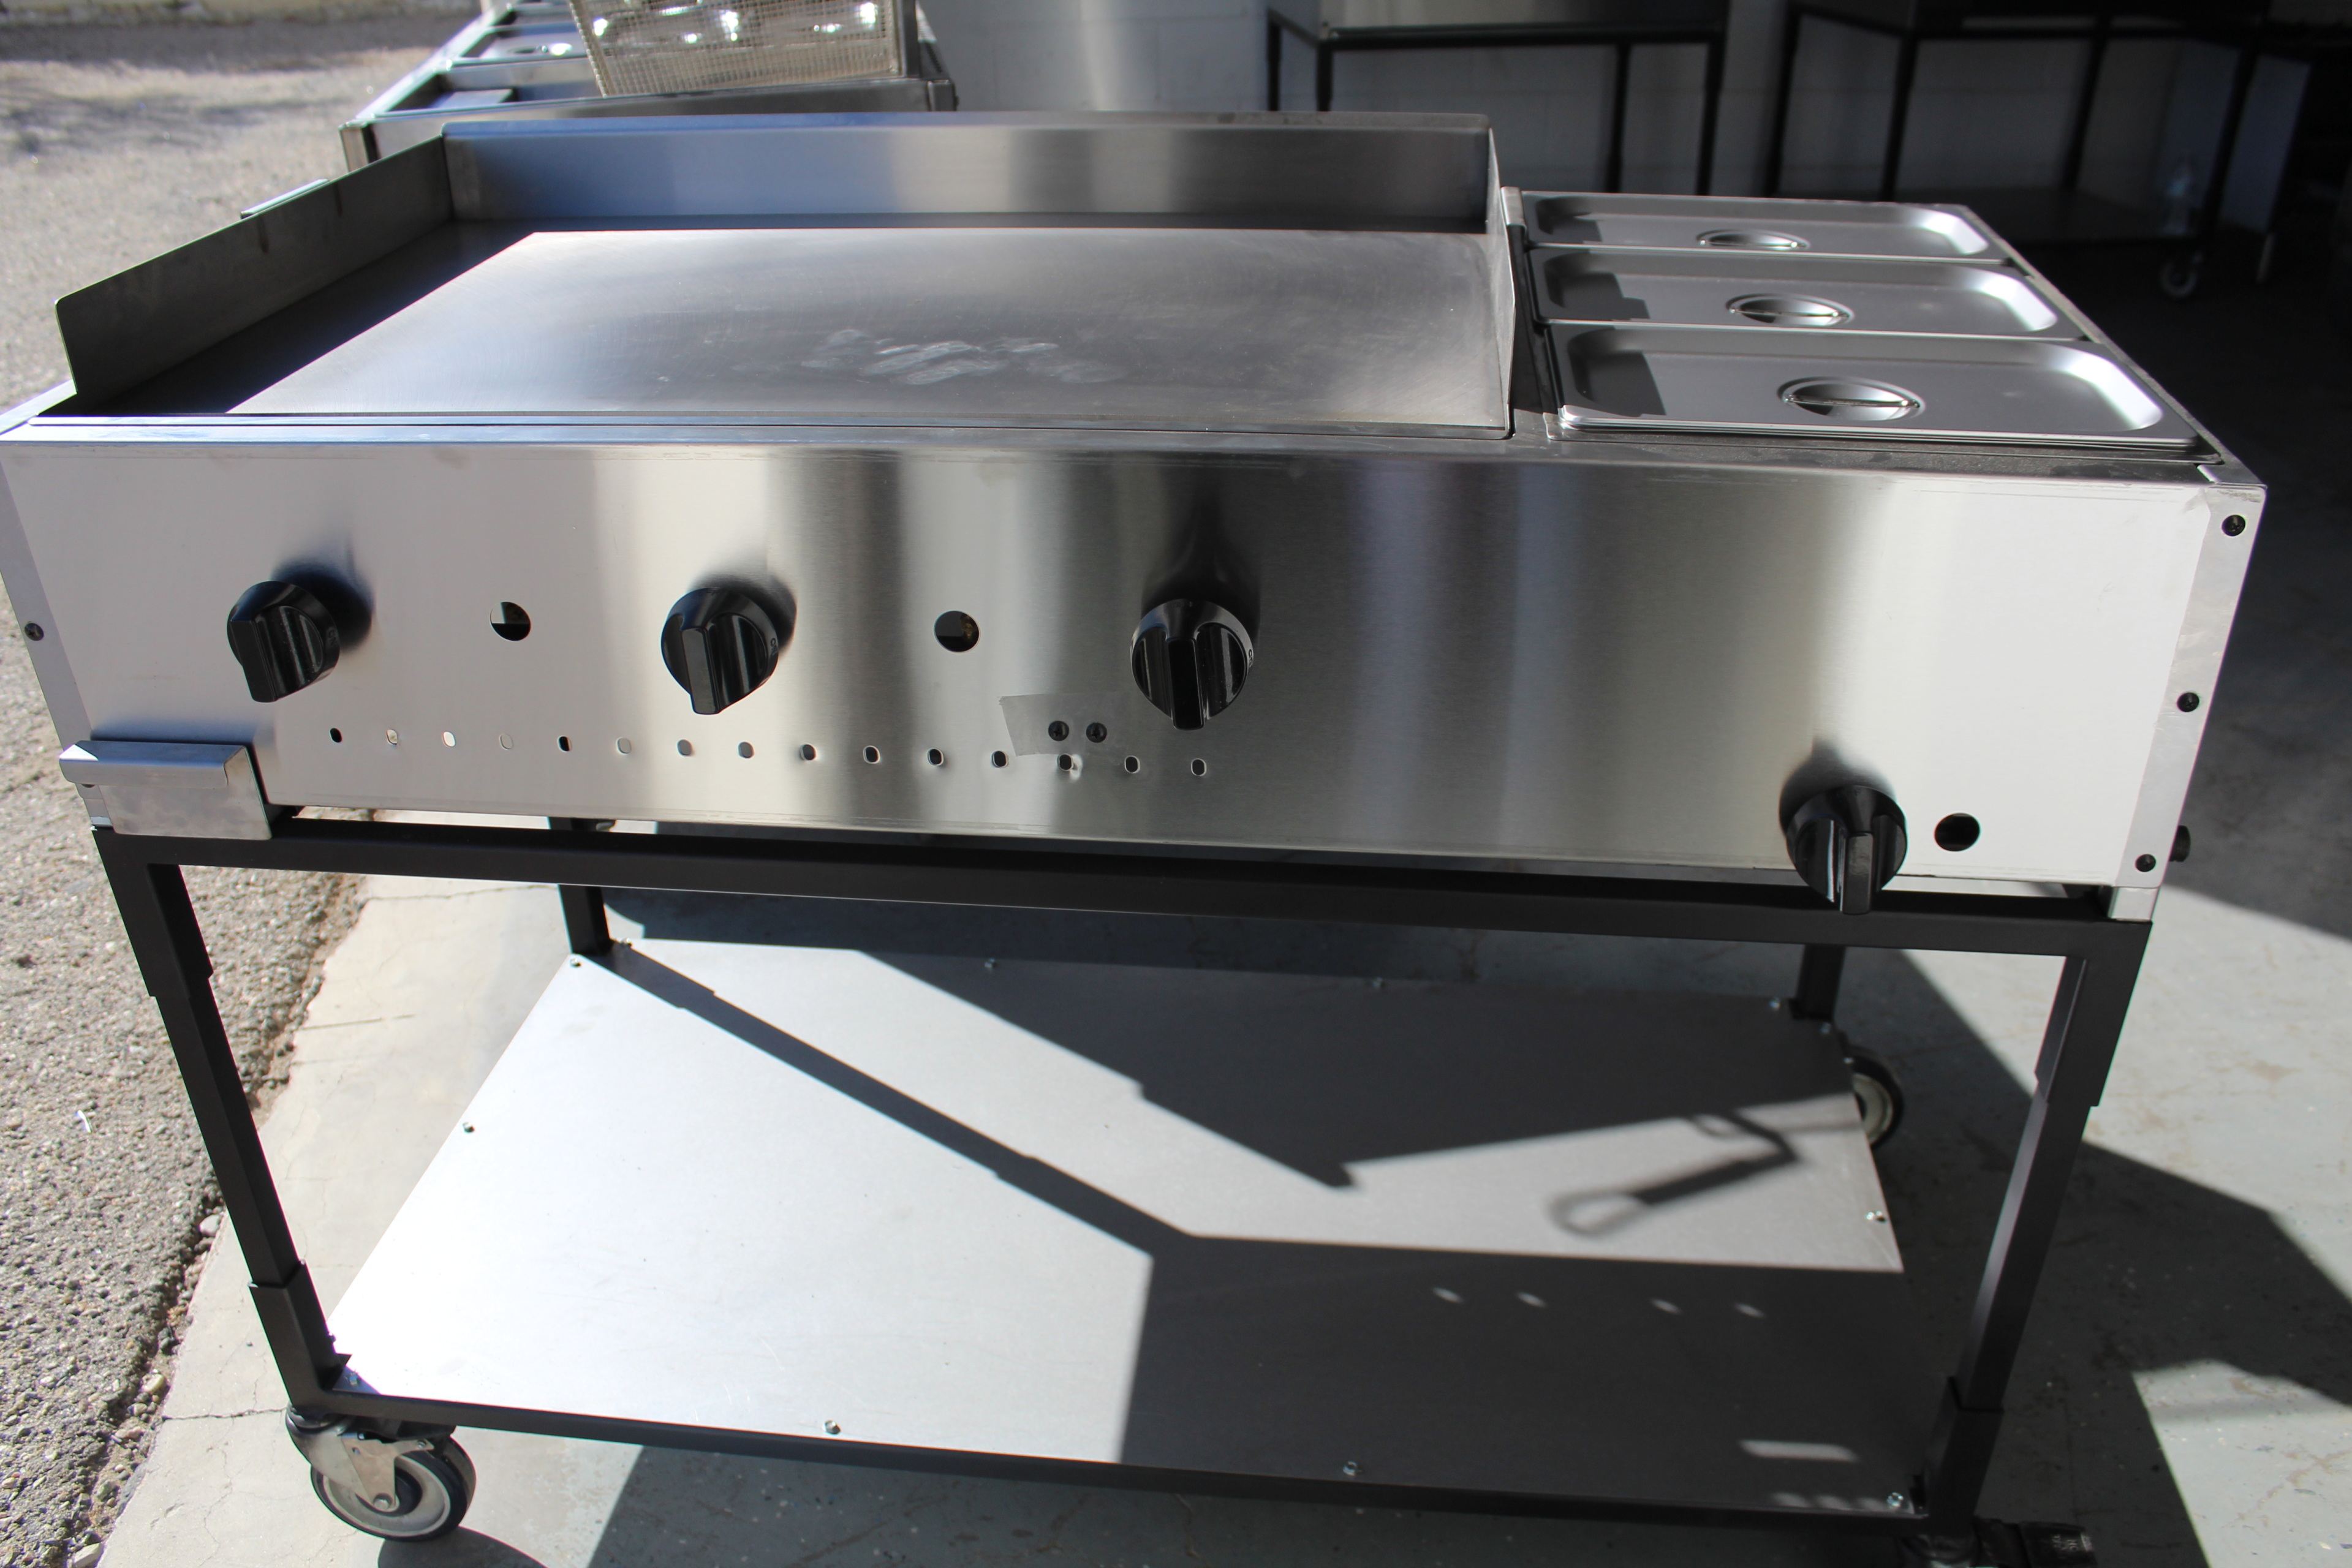 1 48 Quot Taco Cart Griddle And Steam Pan Plancha Con Vaporera